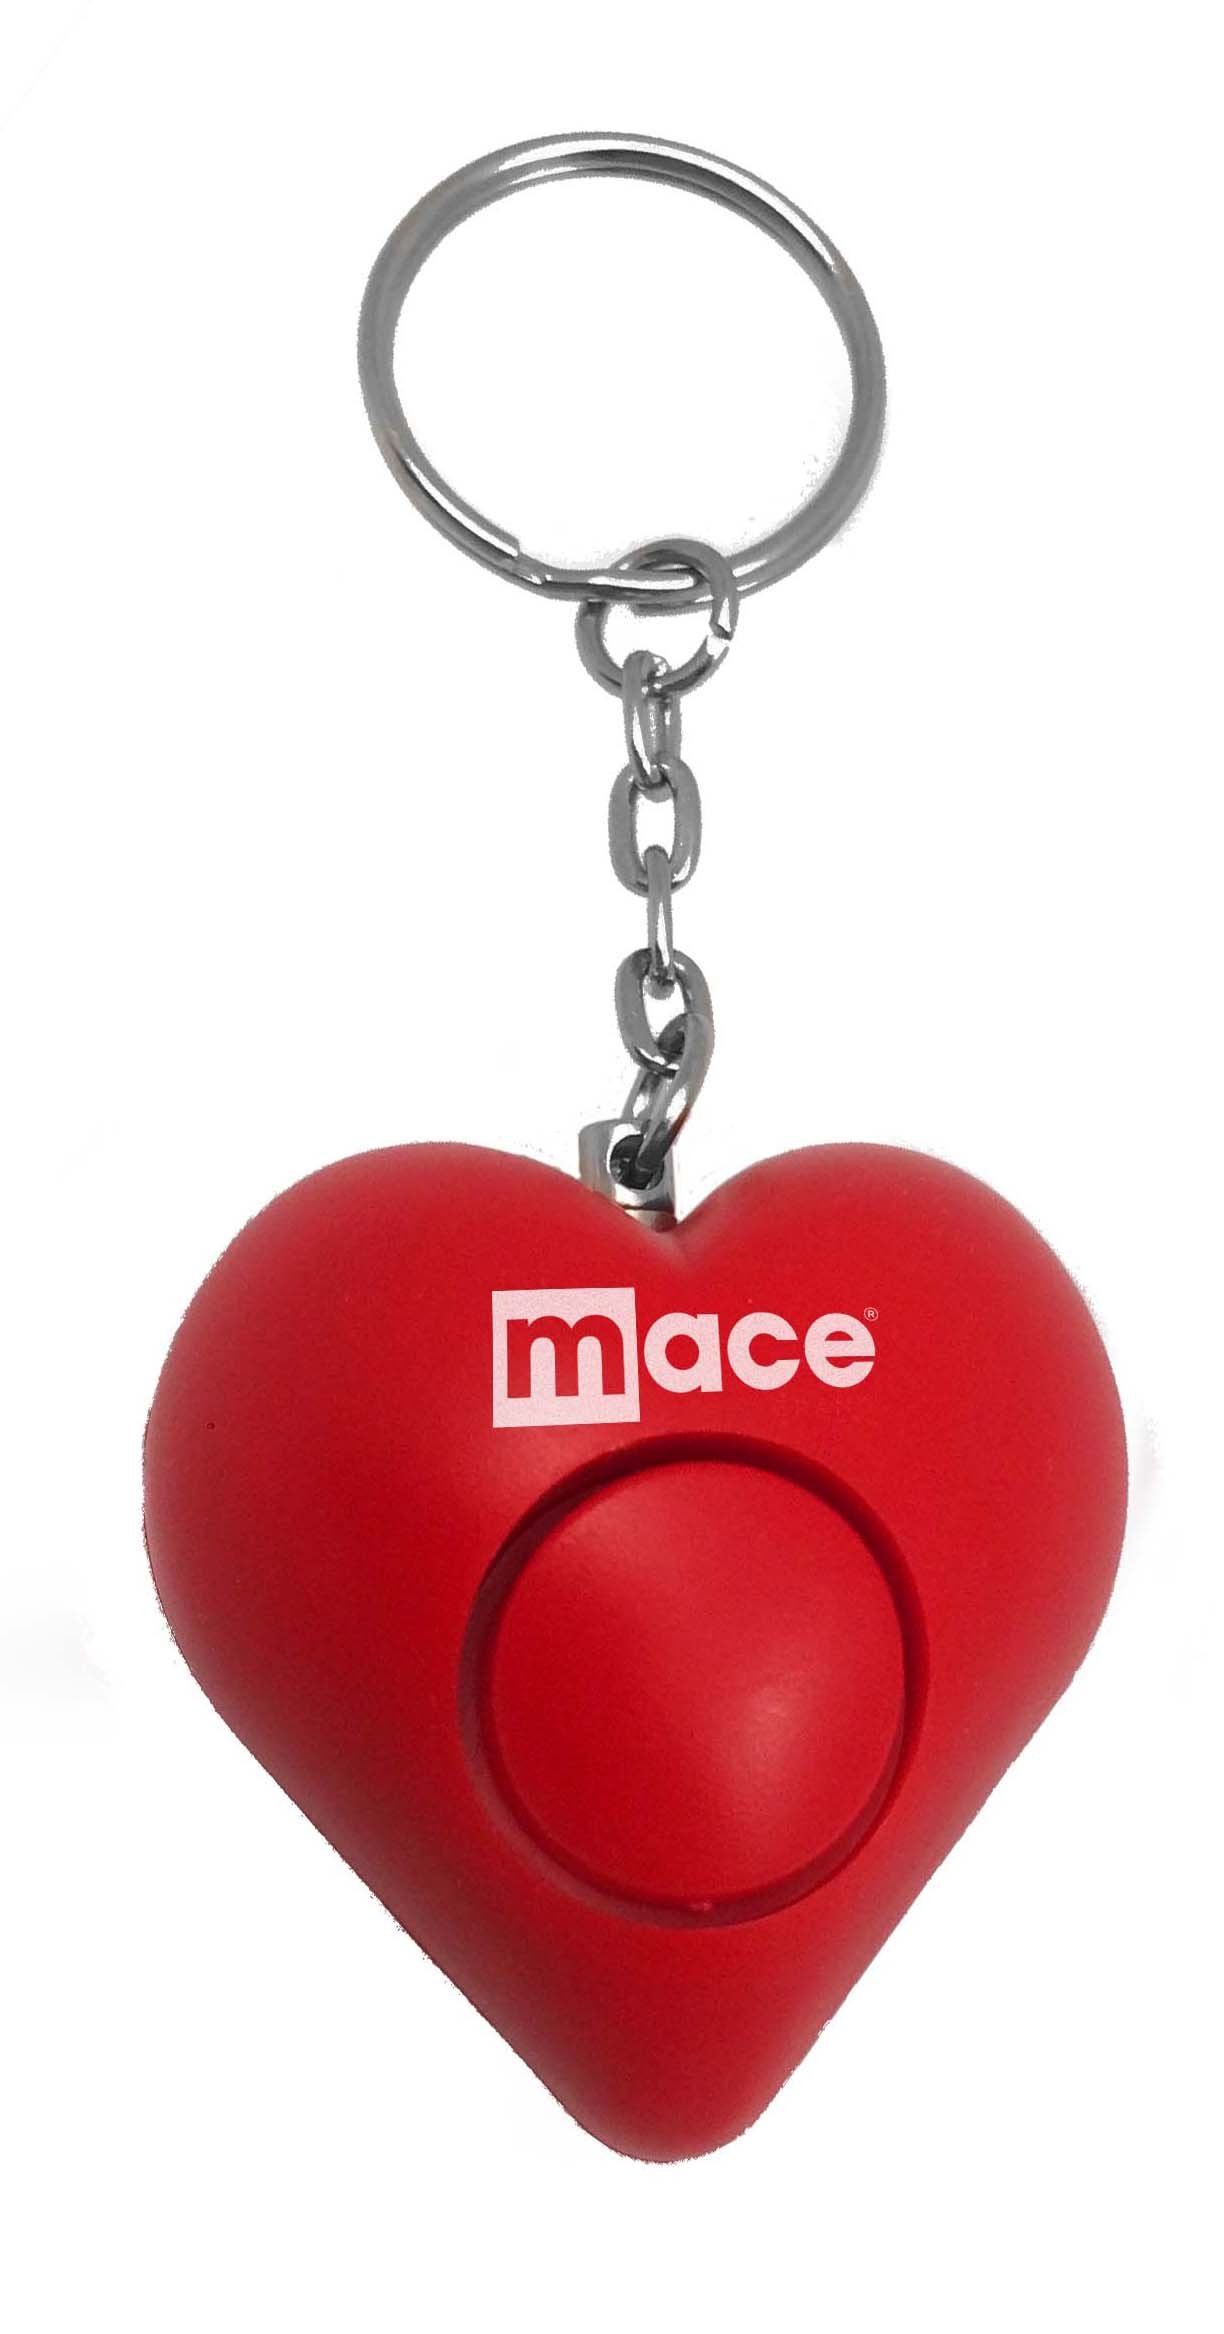 Mace Brand Personal Alarm Heart on Key Ring, Pull Pin Activation, and Test Button (Red)